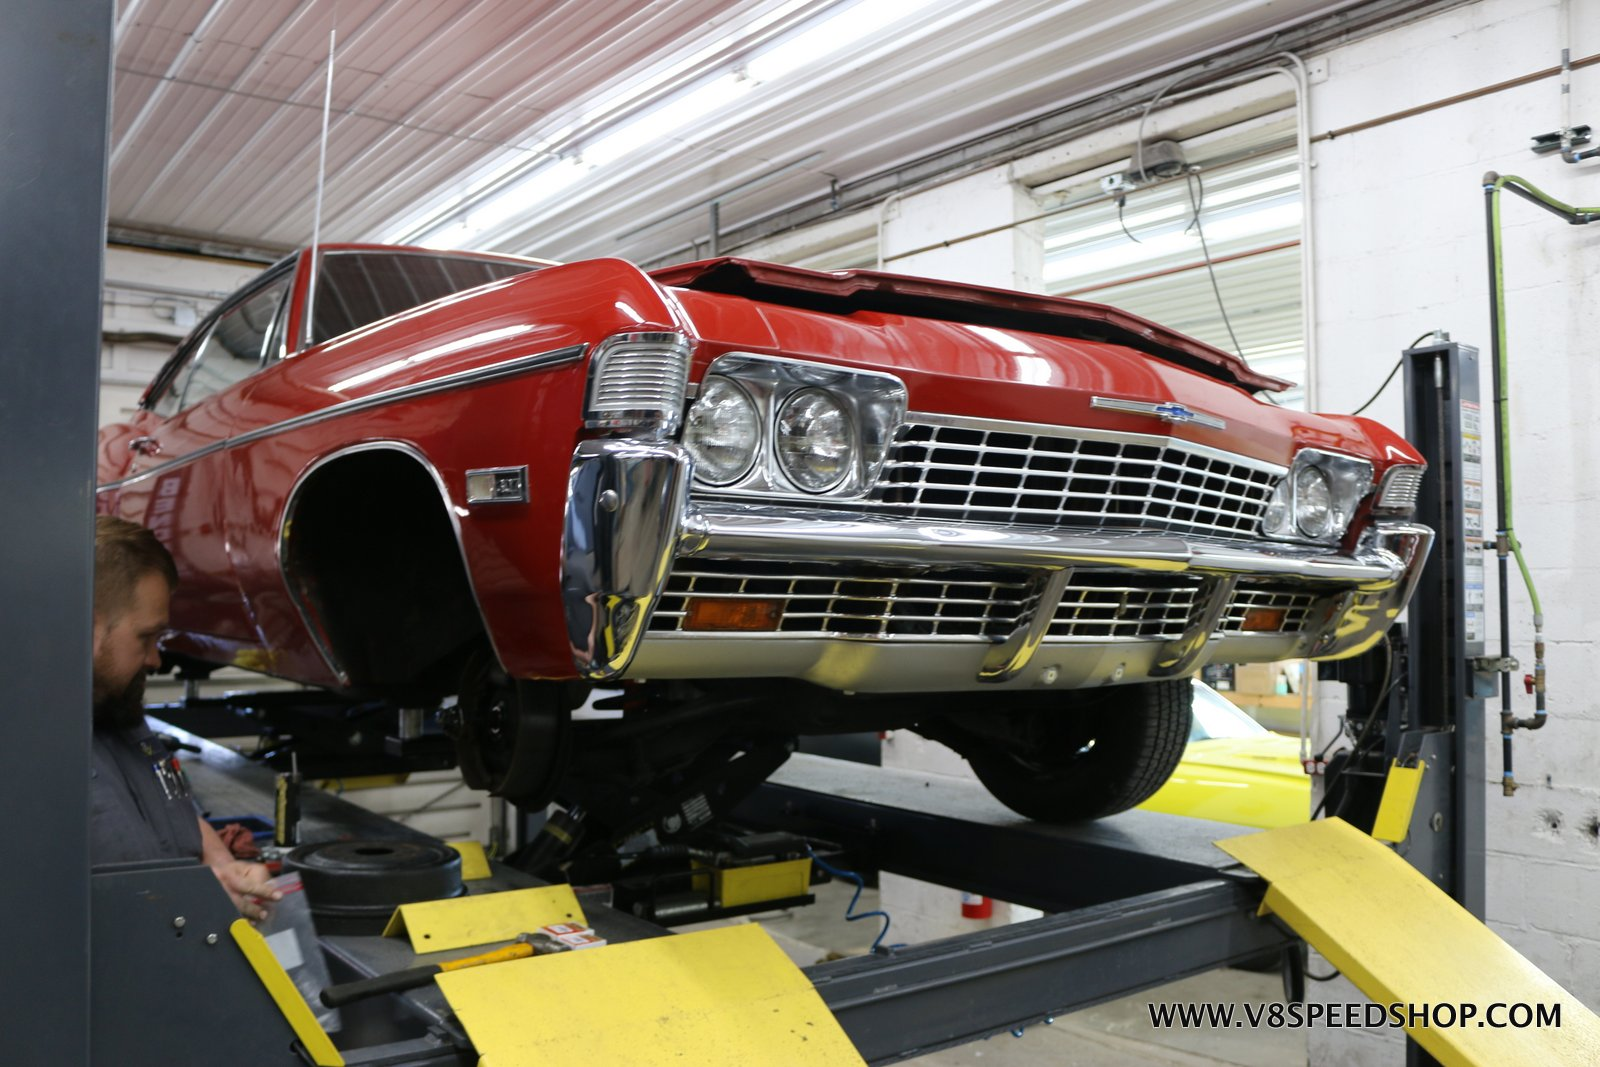 1968 Chevrolet Impala at the V8 Speed and Resto Shop